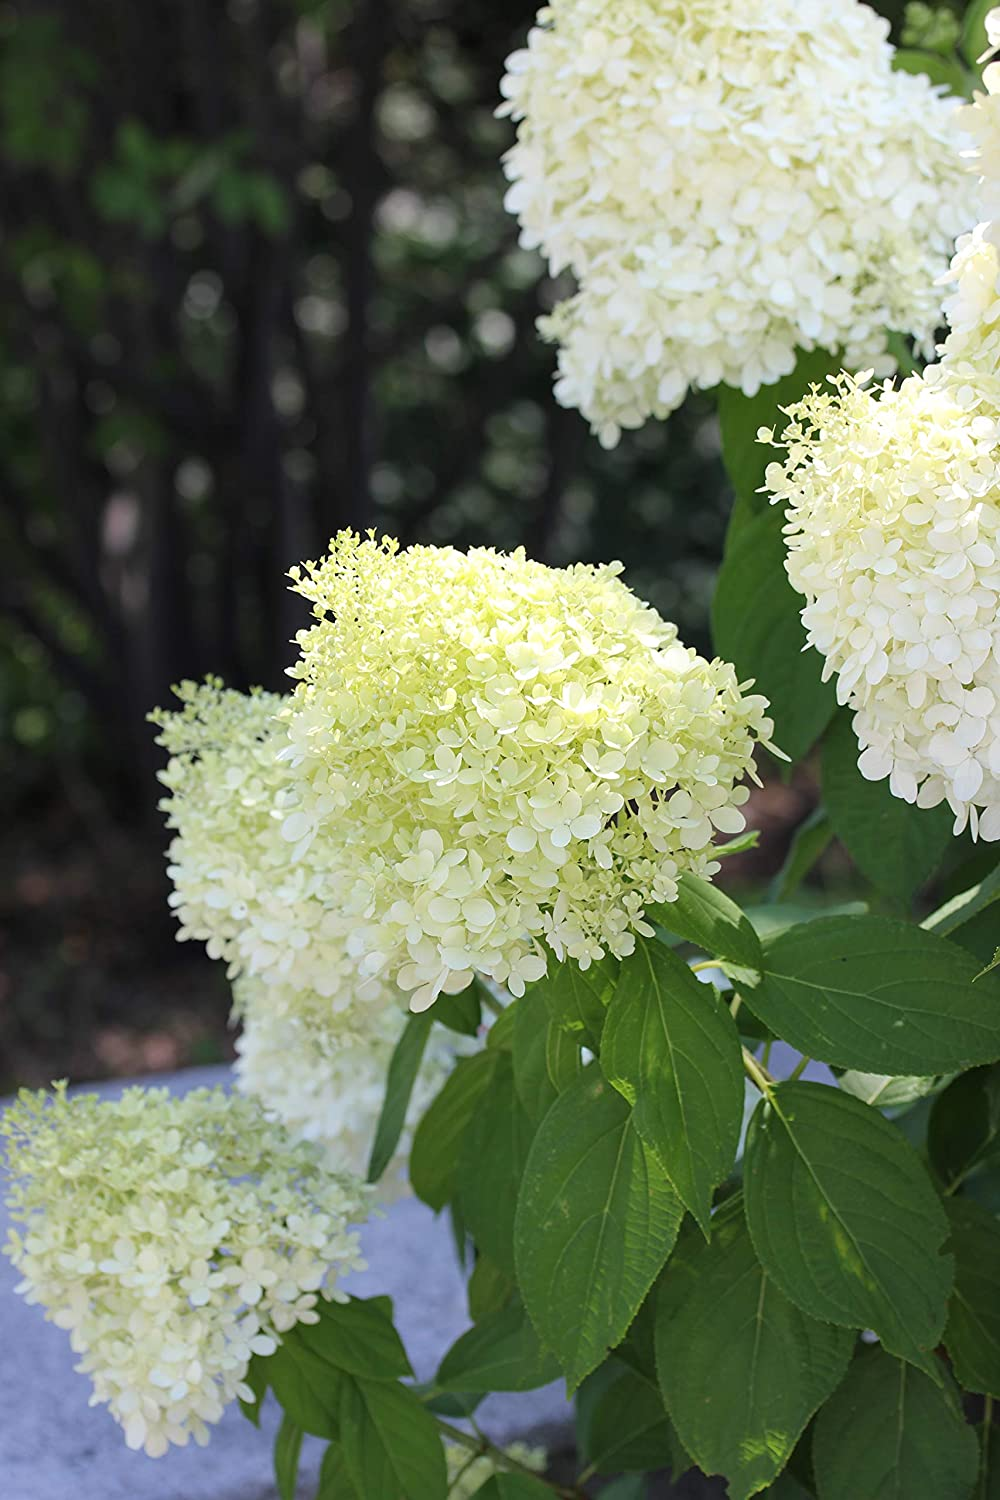 Proven Winner Limelight Hydrangea 2 Gal Green to Pink Blooms